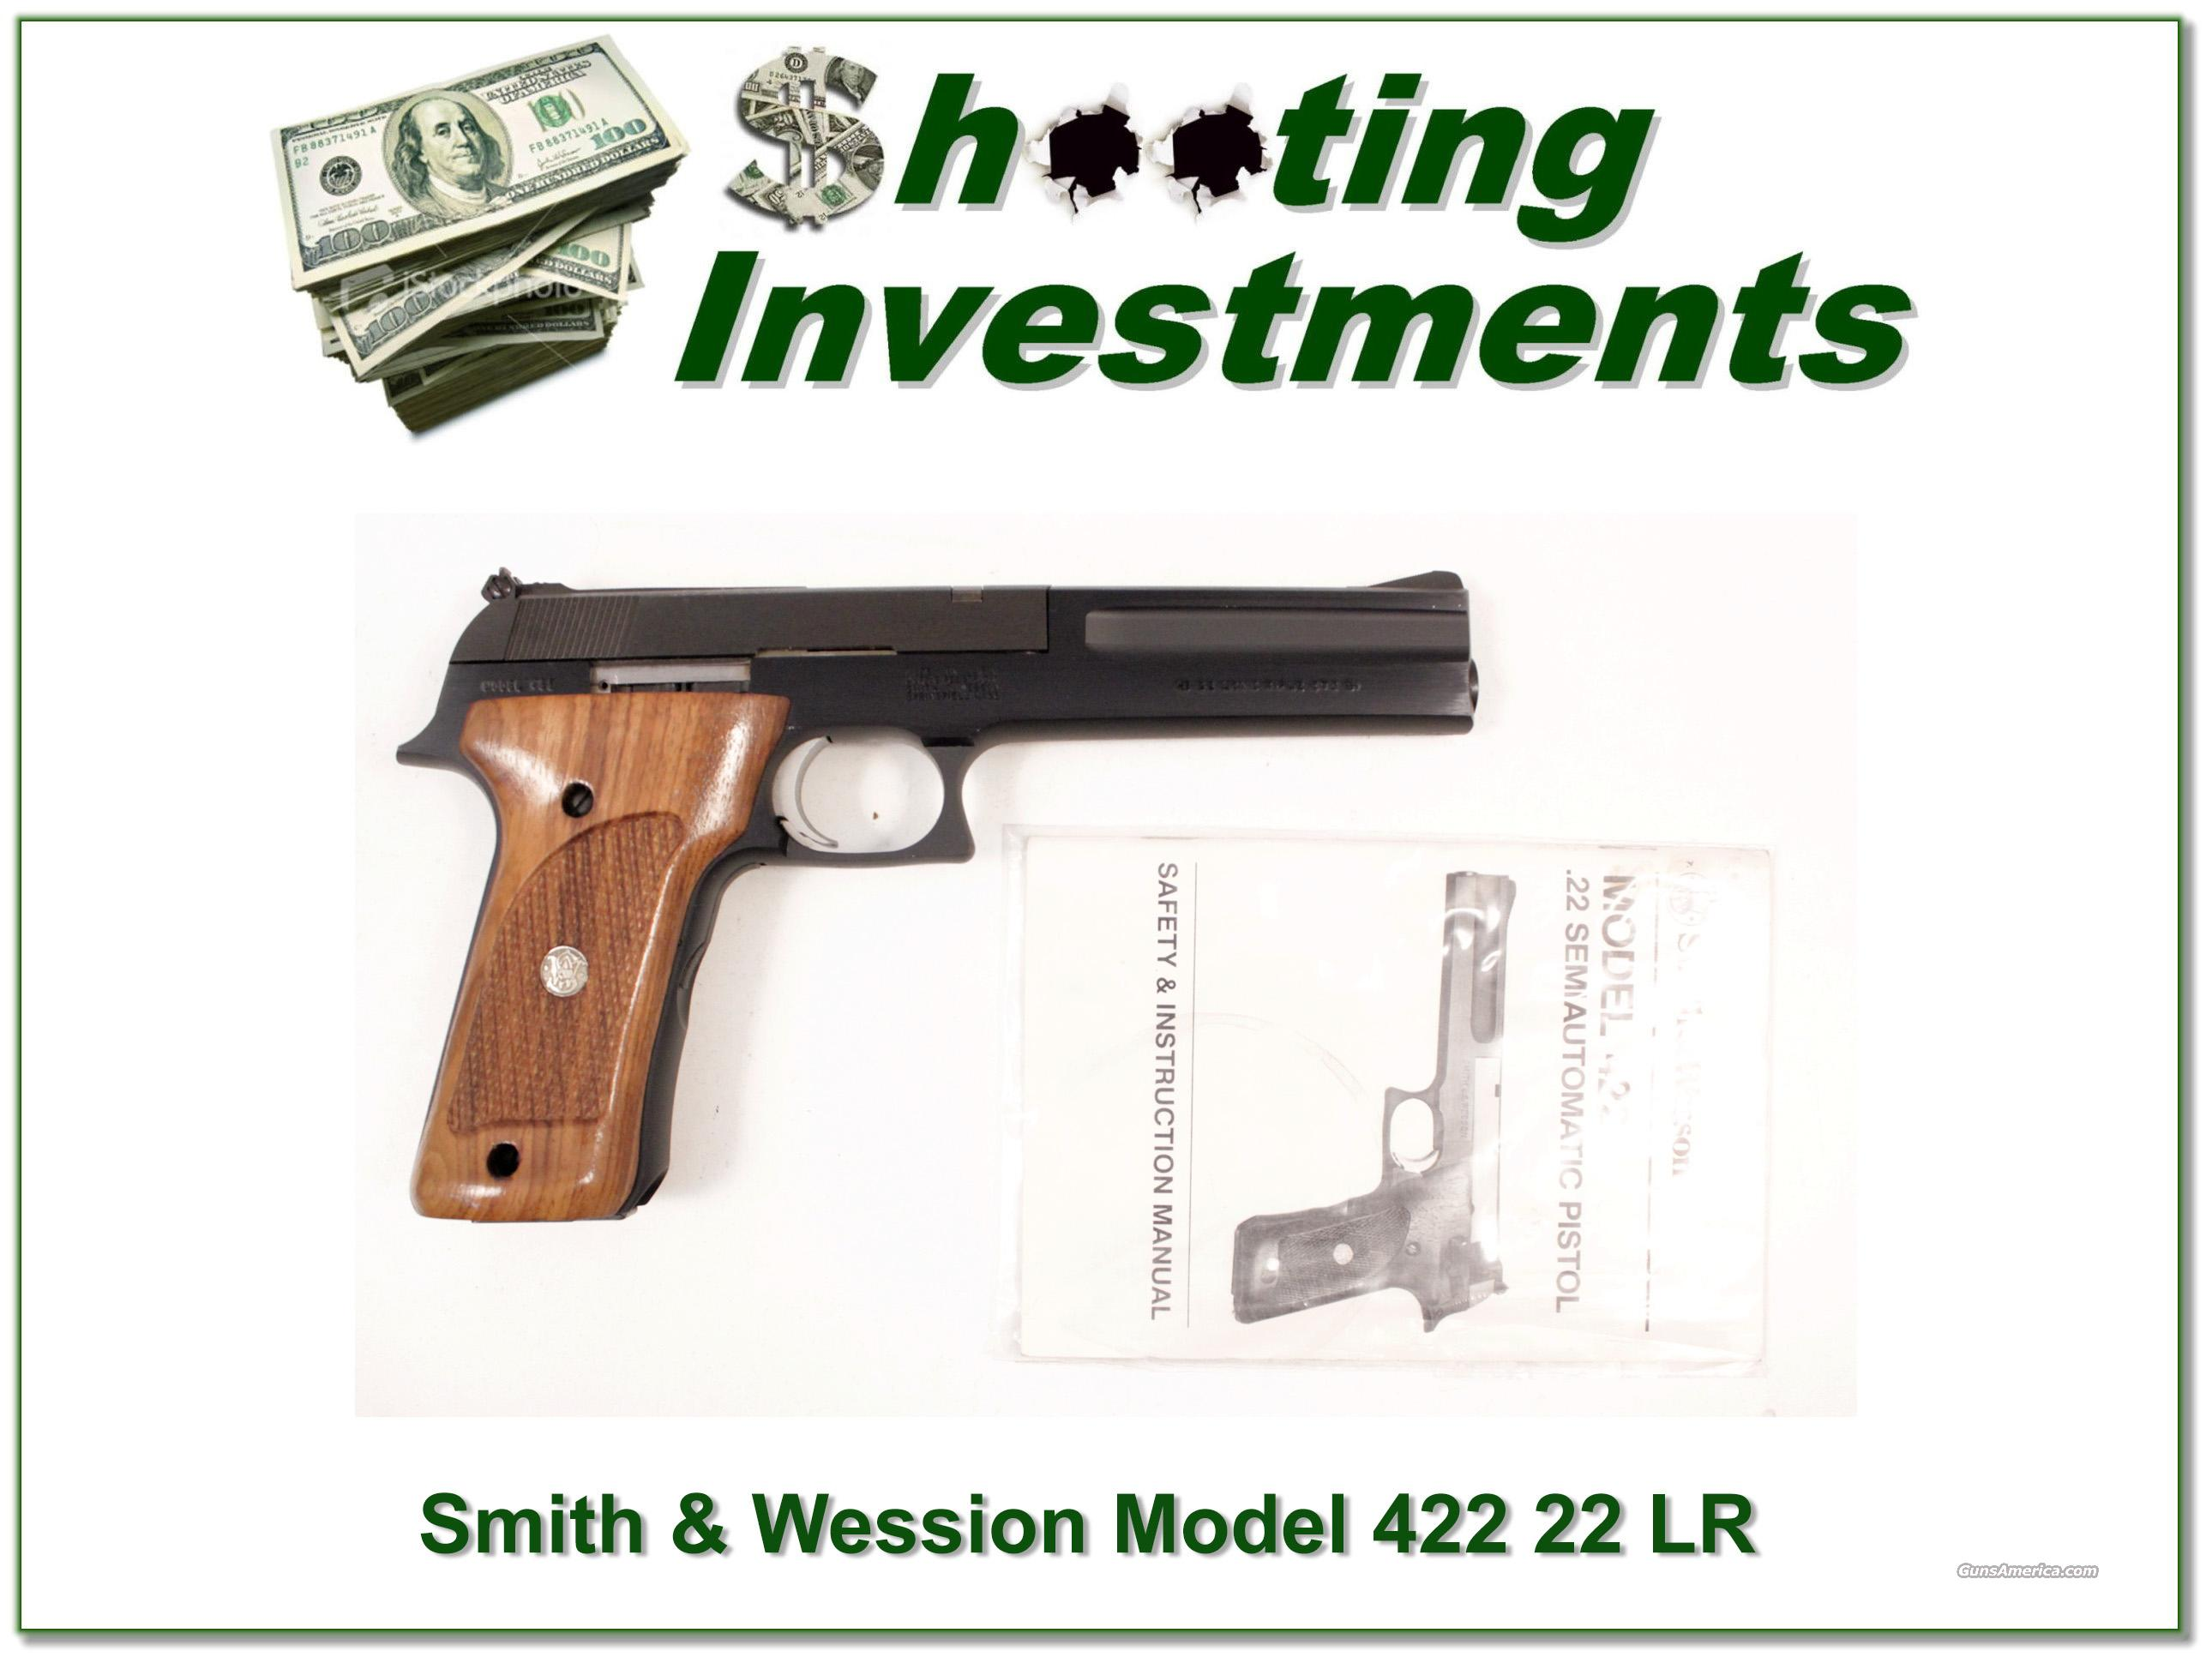 Smith &Wesson Model 422 22 LR  Guns > Pistols > Smith & Wesson Pistols - Autos > .22 Autos